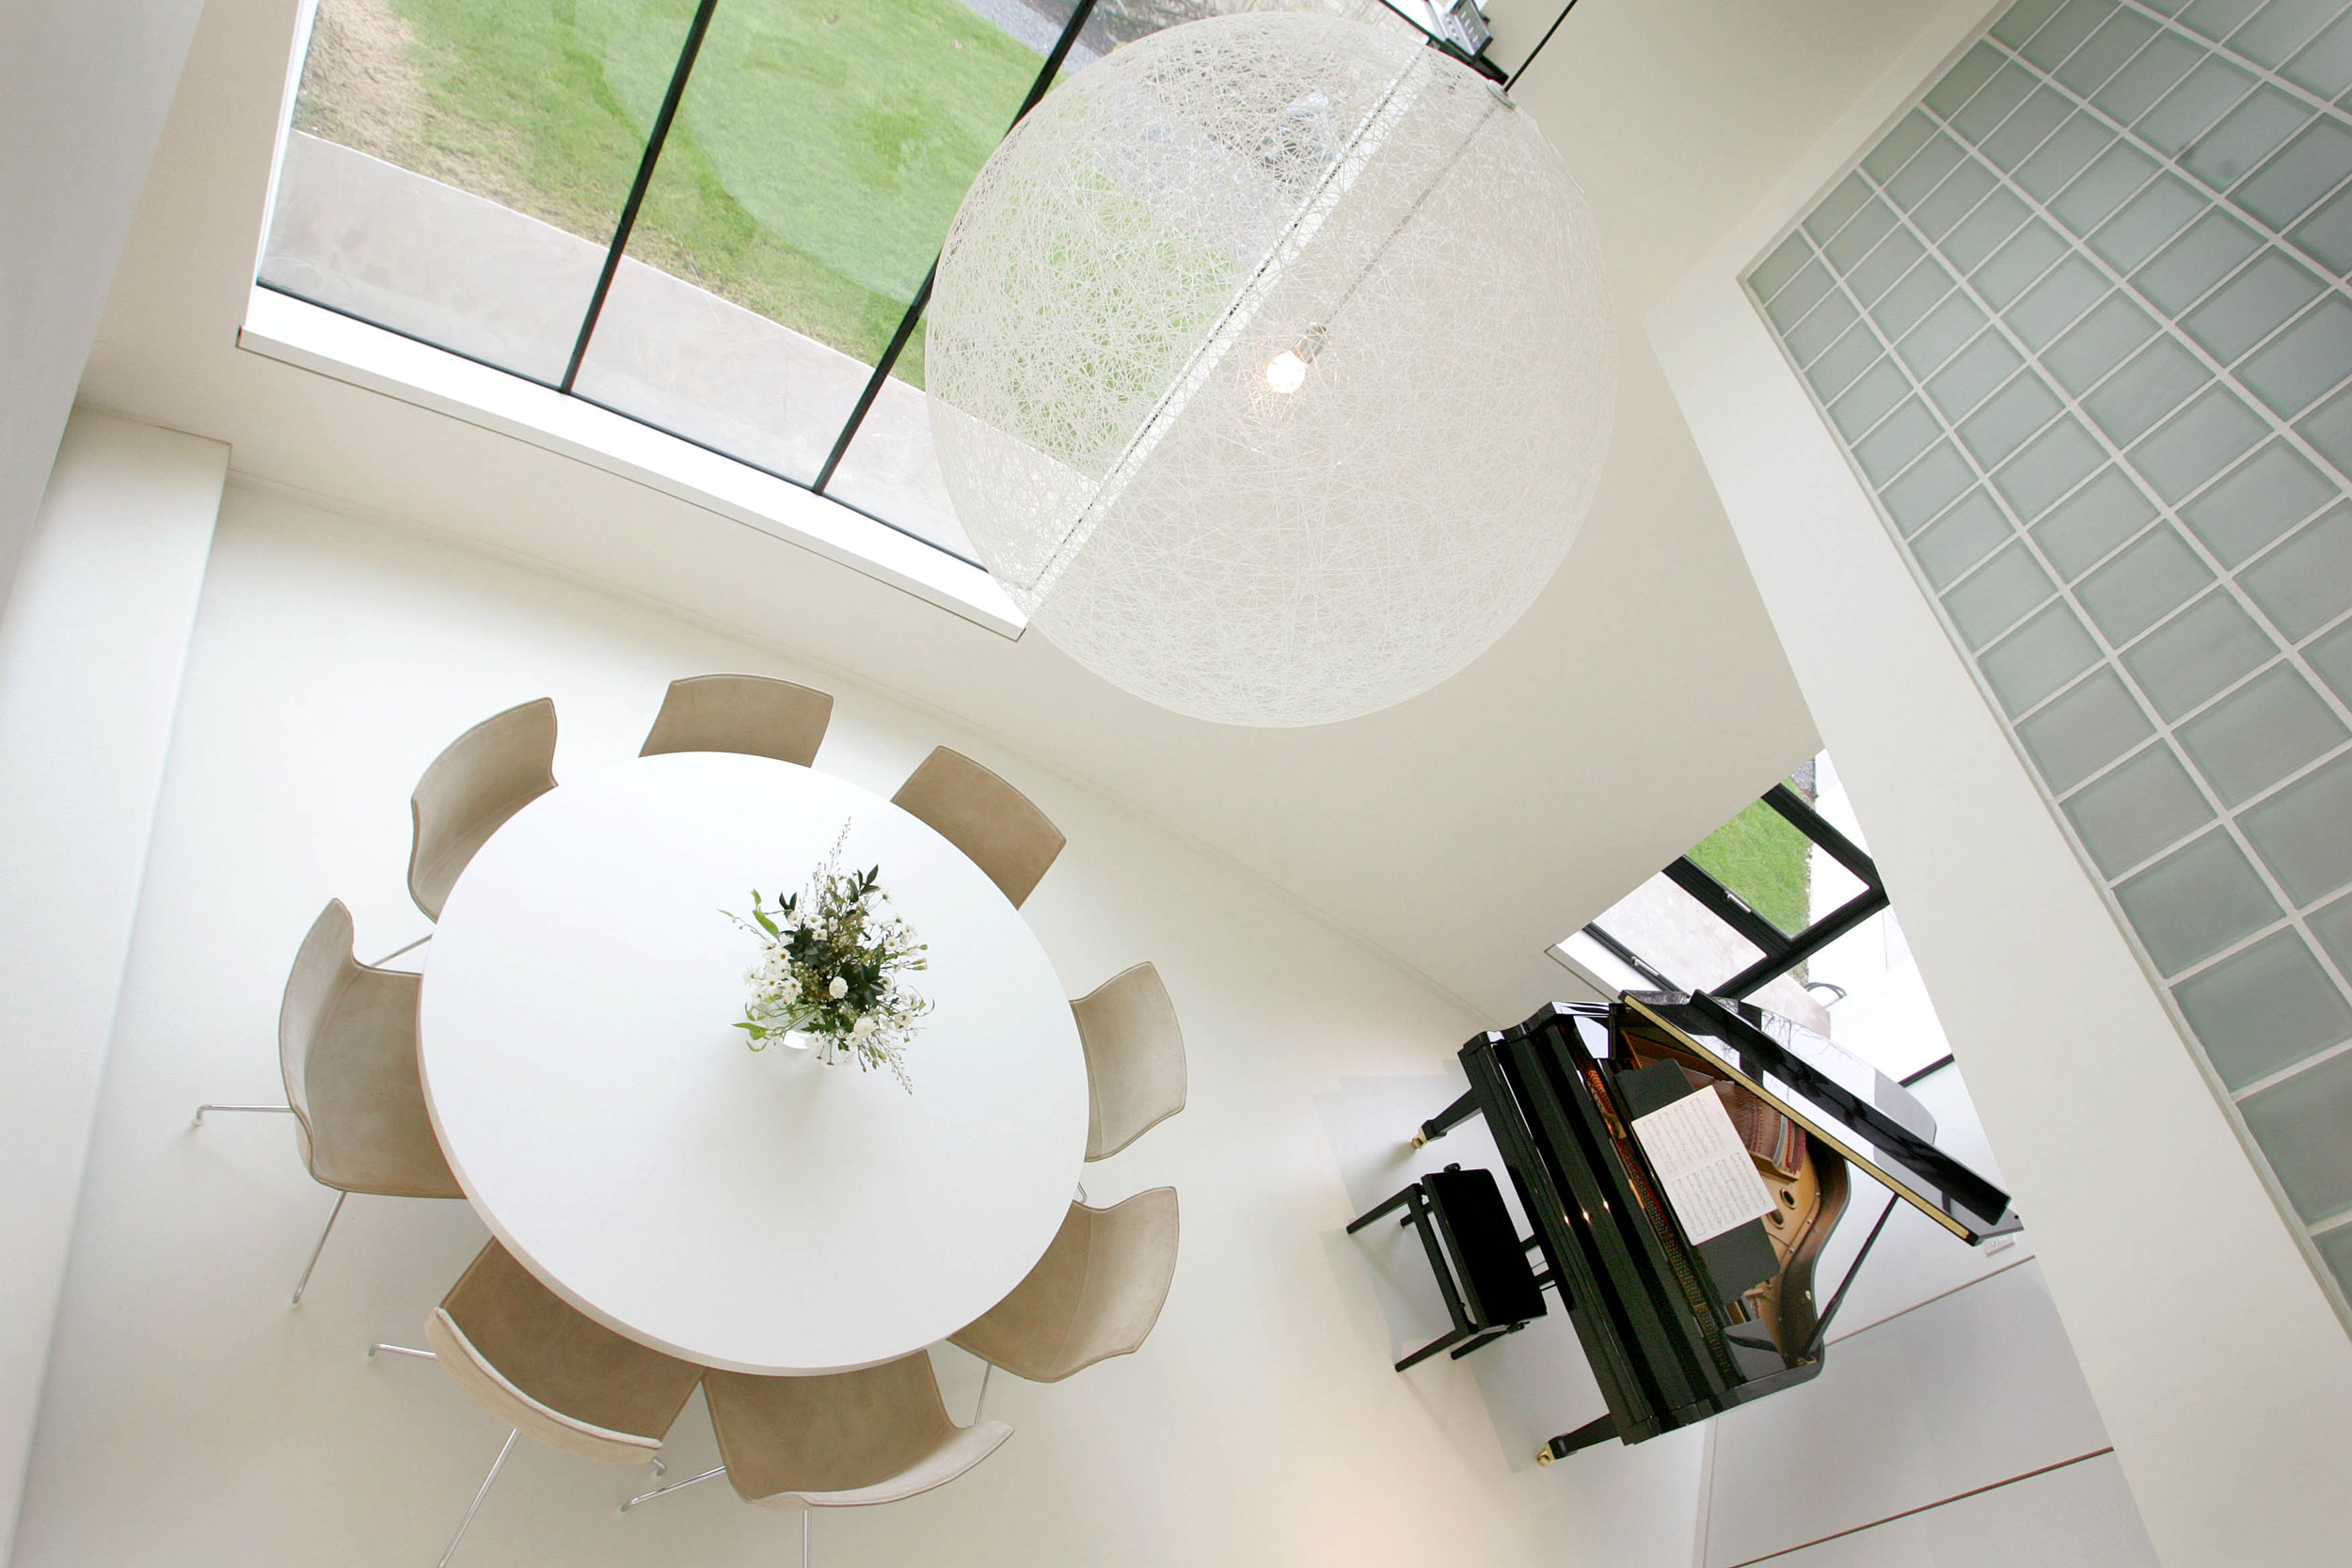 Lymm Water Tower by Ellis Williams Architects (19)